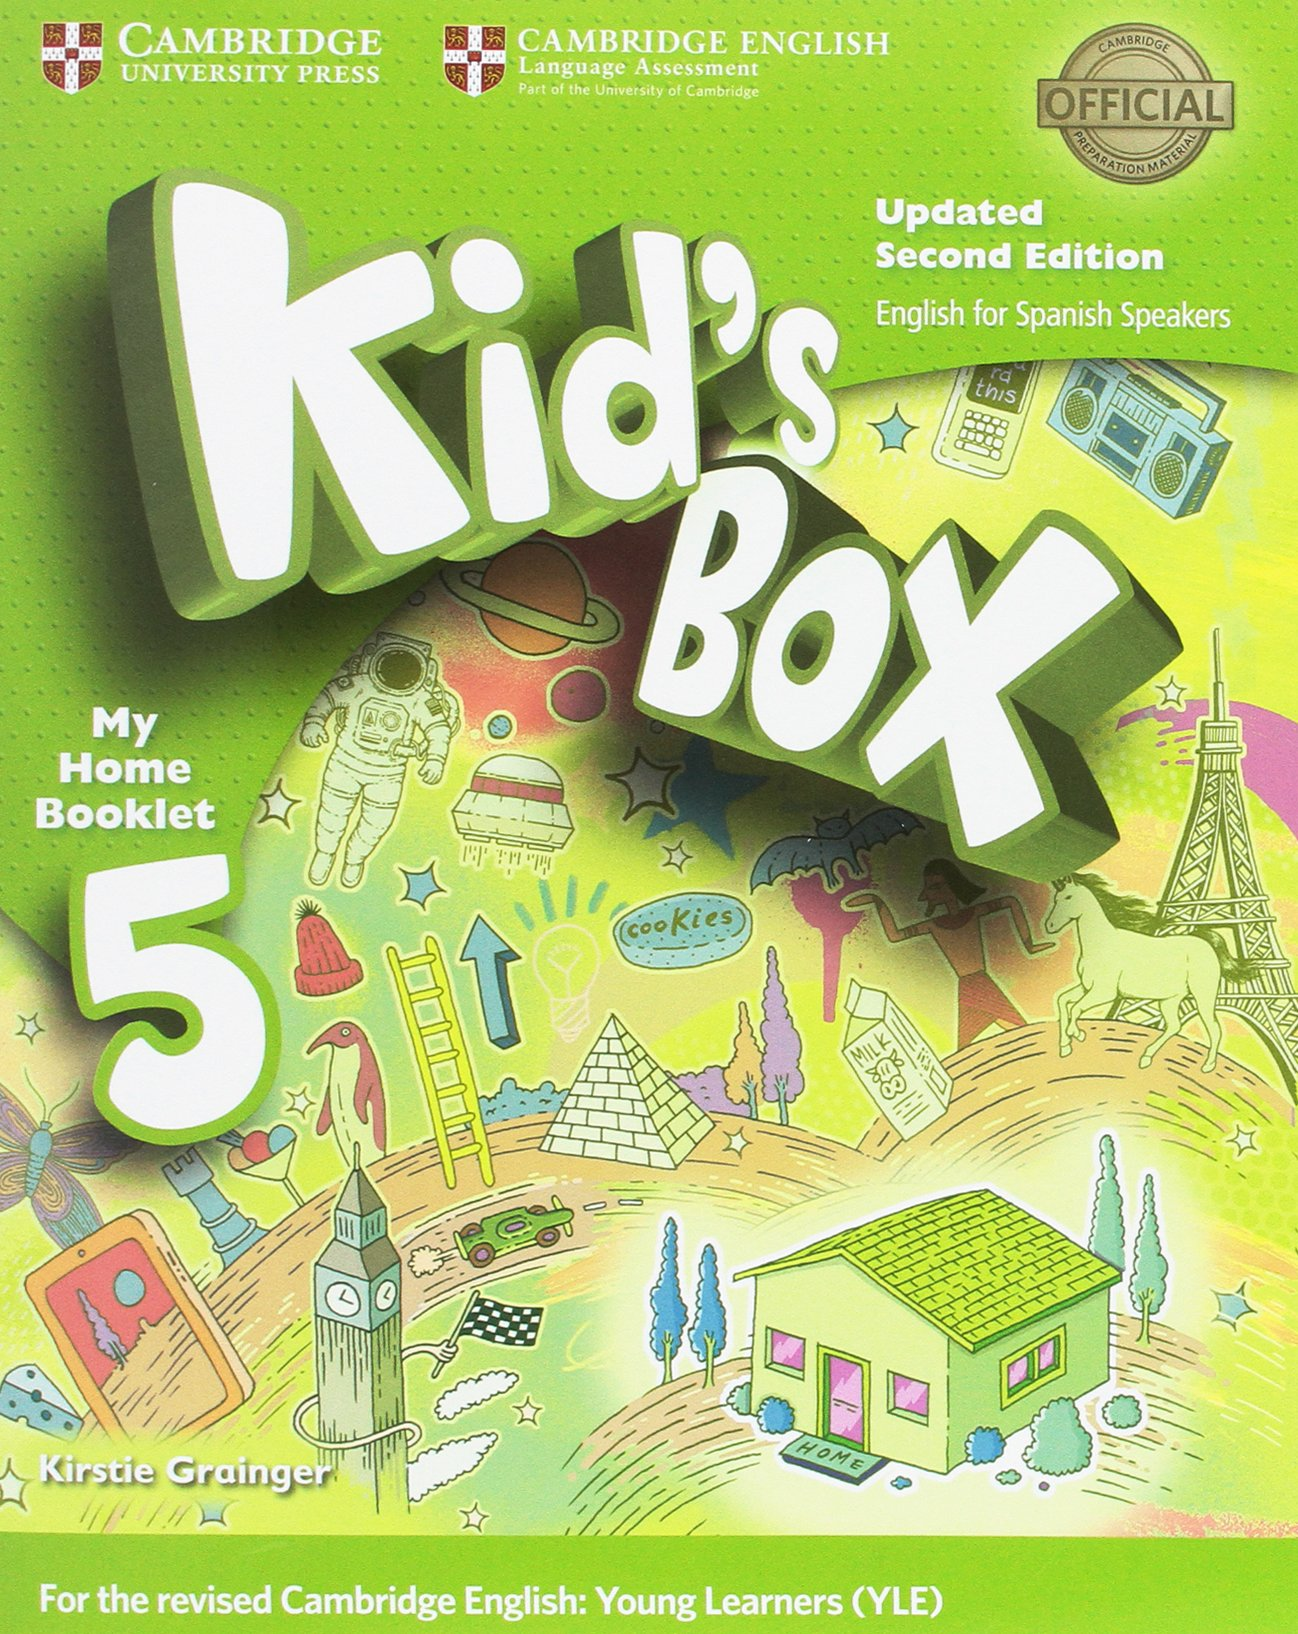 Kid's Box Level 5 Activity Book with CD ROM and My Home Booklet Updated  English for Spanish Speakers Second Edition - Pack de 3 libros -  9788490369692: ...